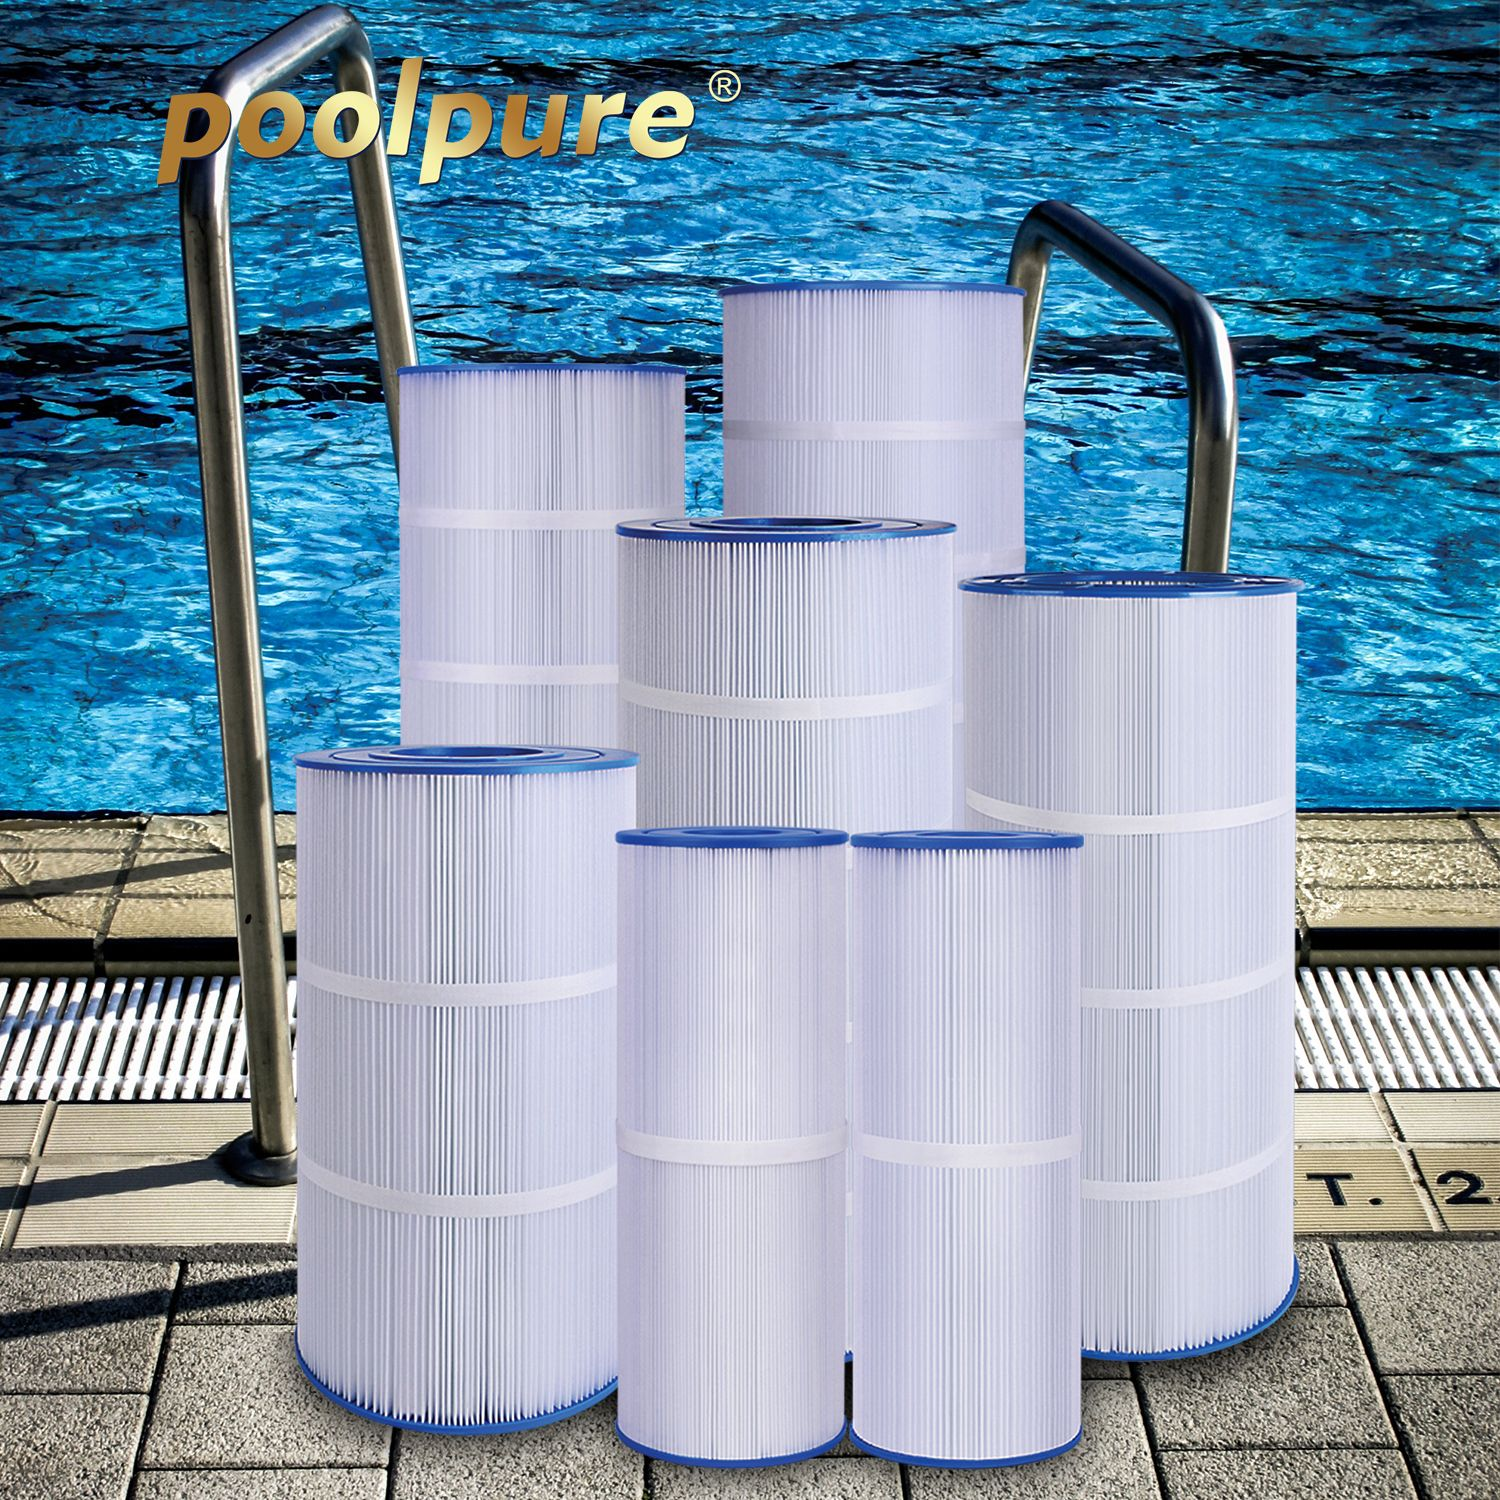 Poolpure pool spa filters can be used for 12 yearseven